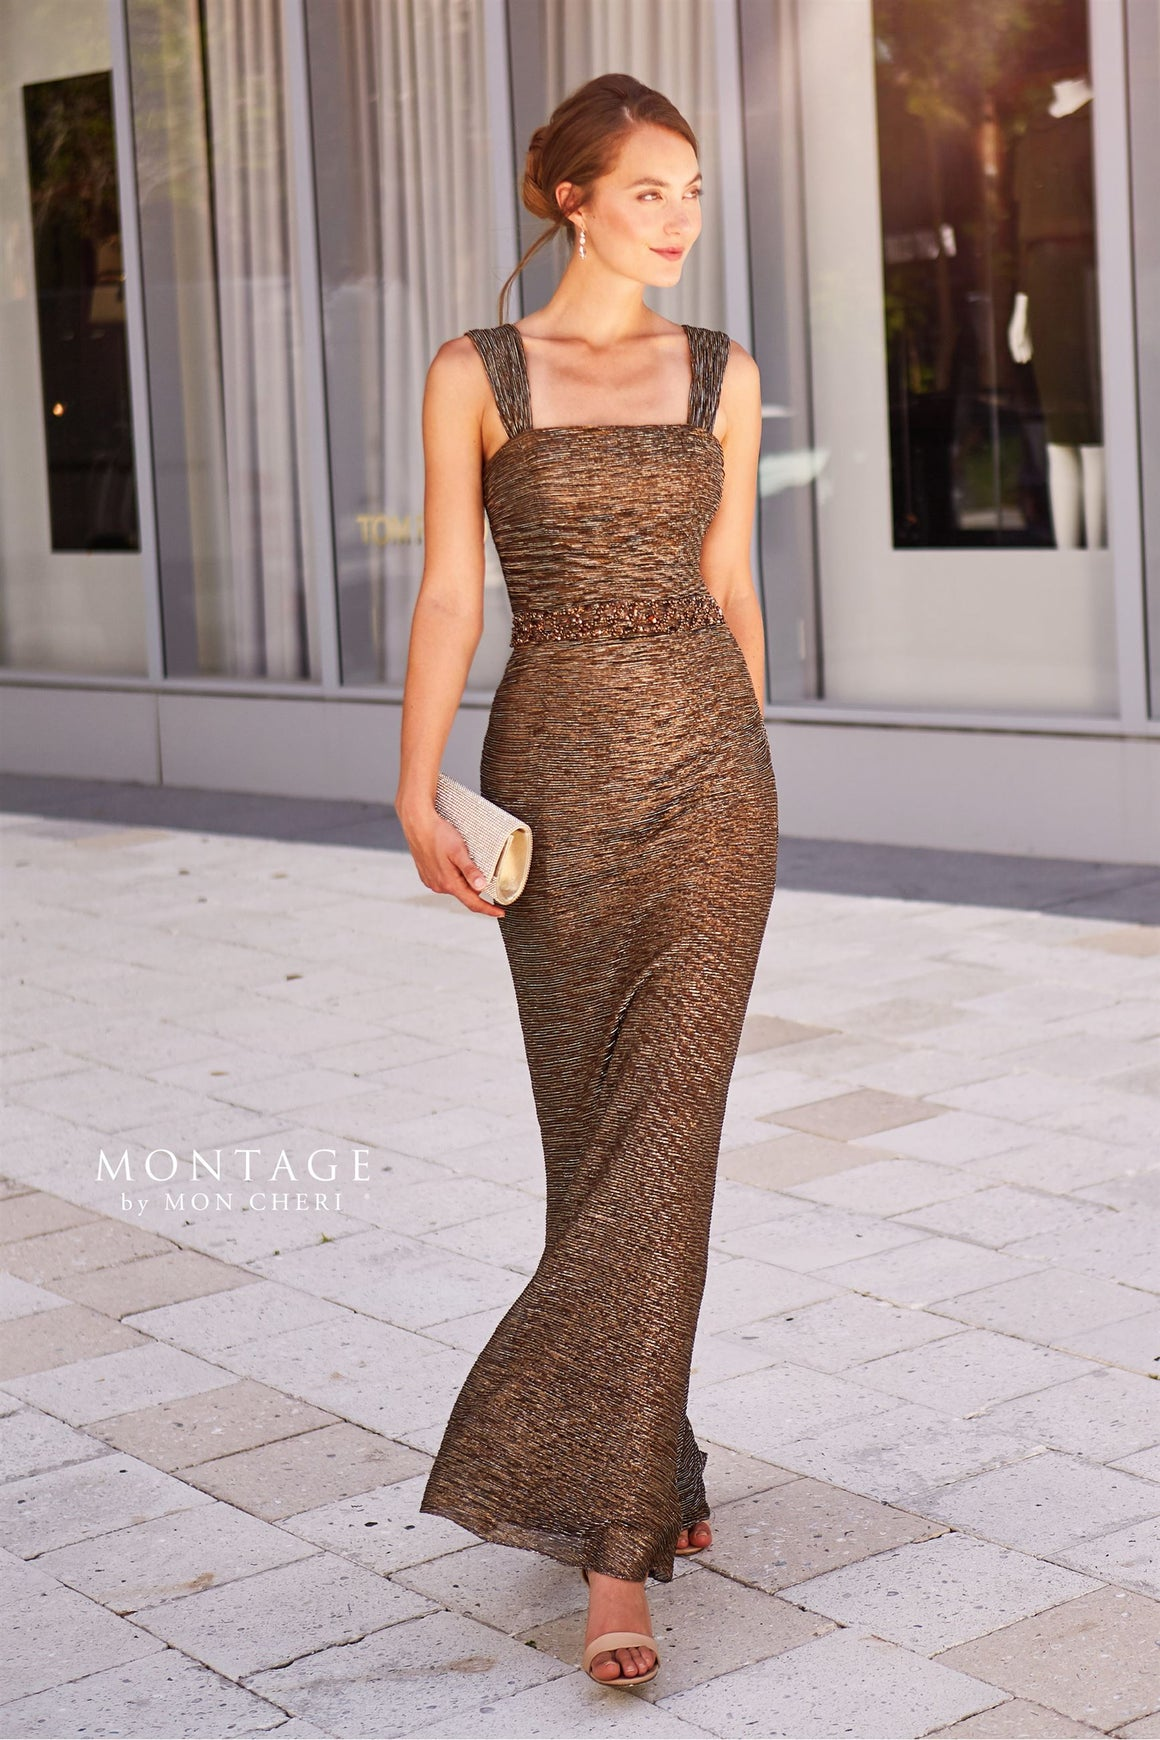 120902 Montage Stretch Metallic Fit & Flare With Beaded Waist